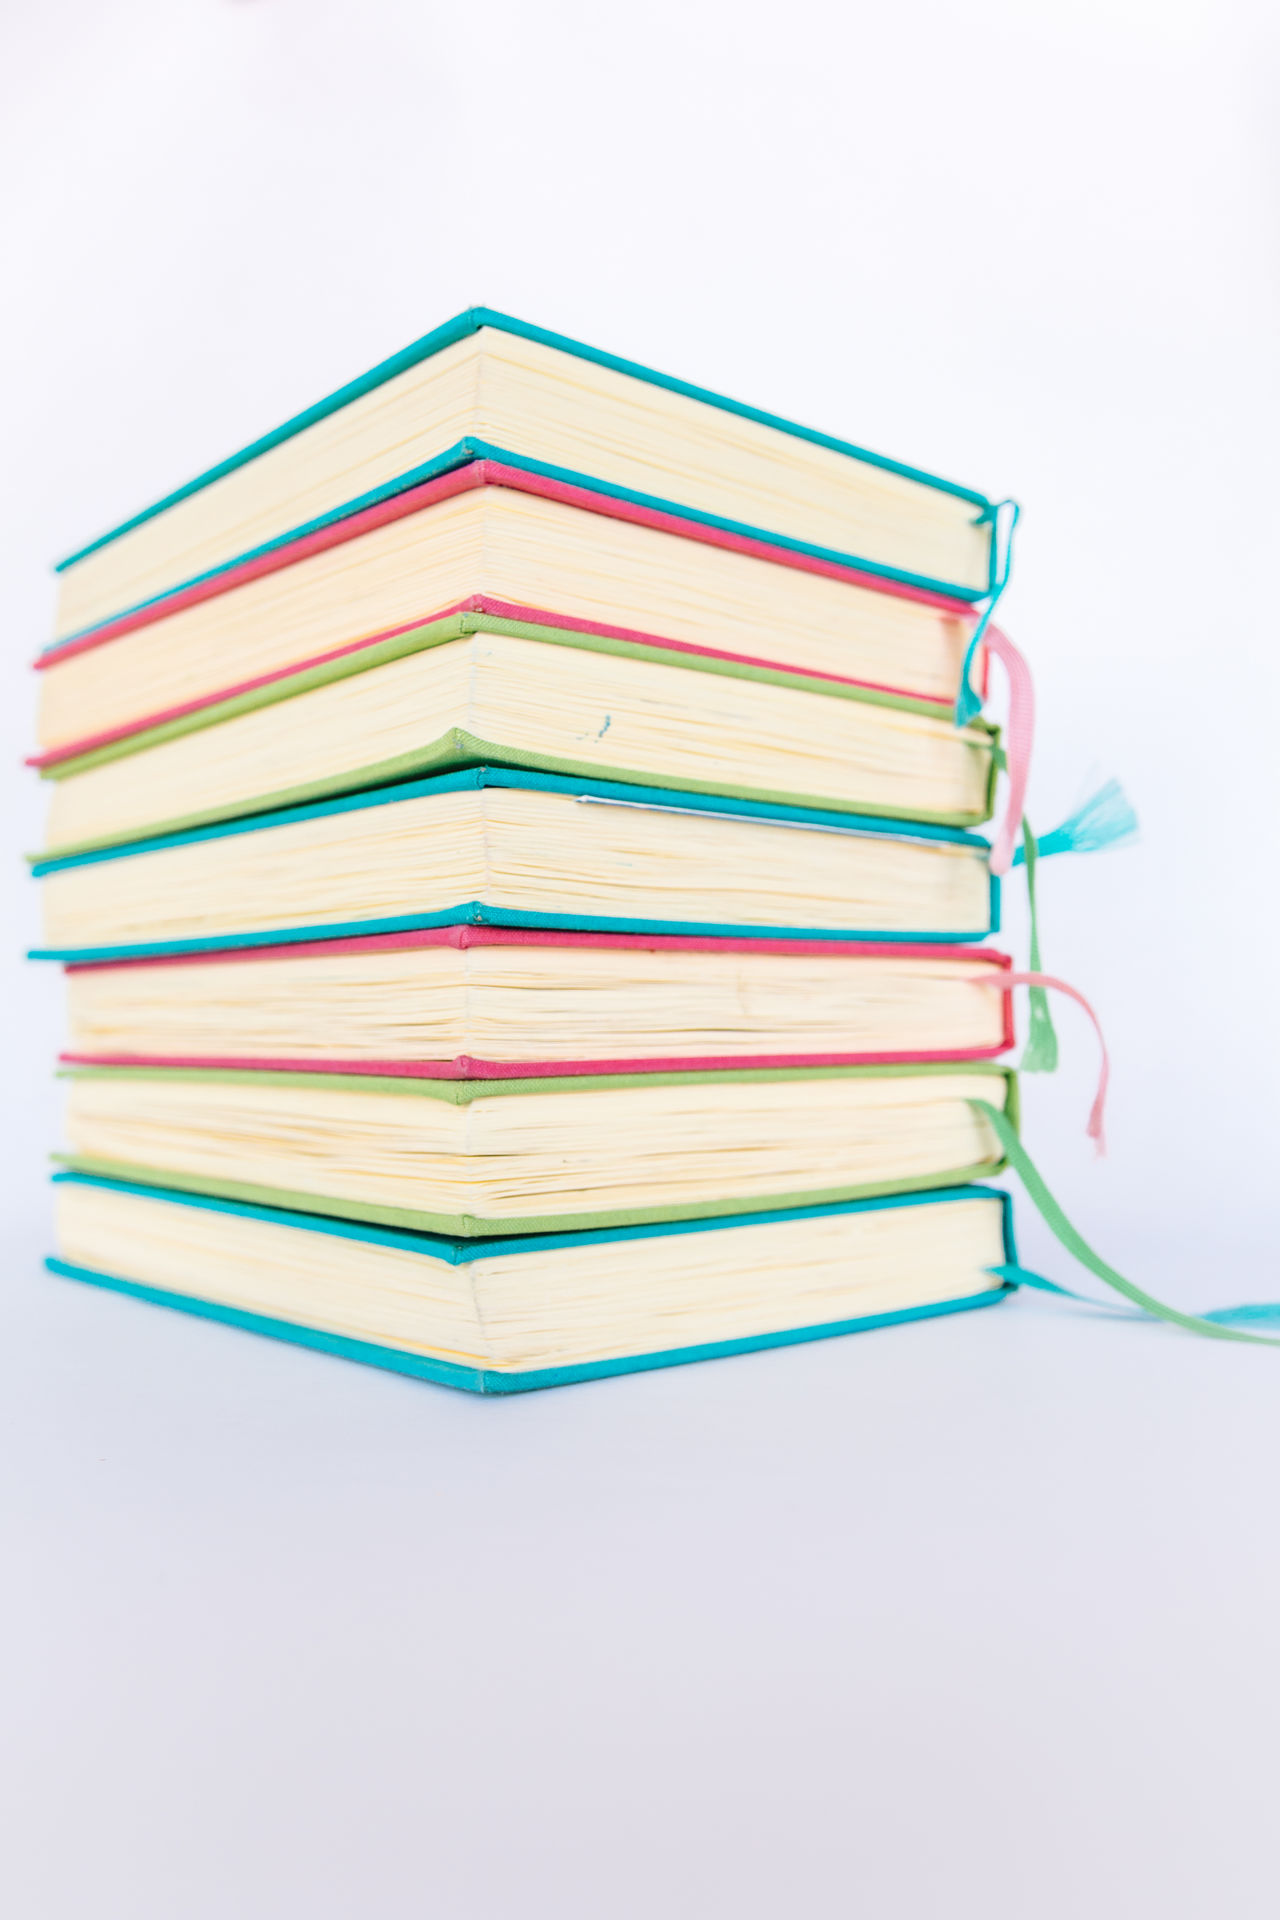 Colorful Books Blue Books Colorful Colors Cyan Education Educational Green Learning LearningEveryday Multi Colored No People Paper Pink Reading Reading Books Reading Time Stack Studio Shot Study Hard Study Time Studying White Background